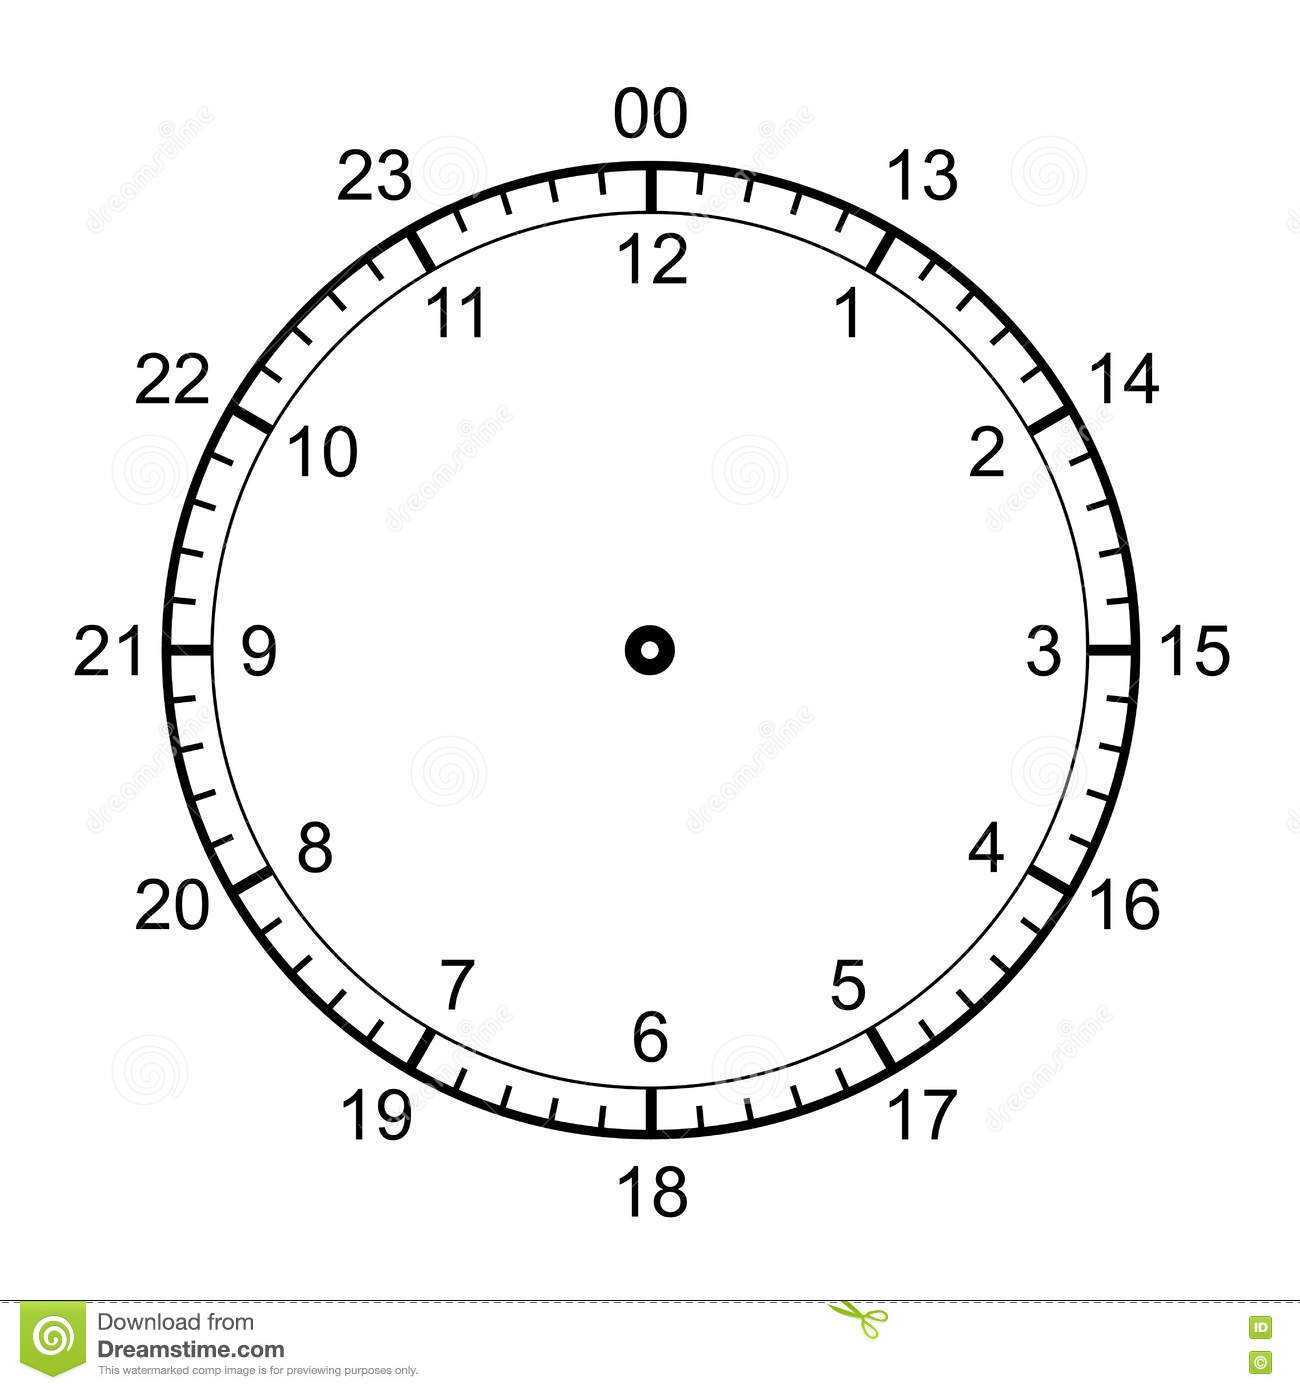 worksheet Learn To Tell Time learn to tell time tally worksheets mutiplication early learning wall clock vector cartoon blank image early